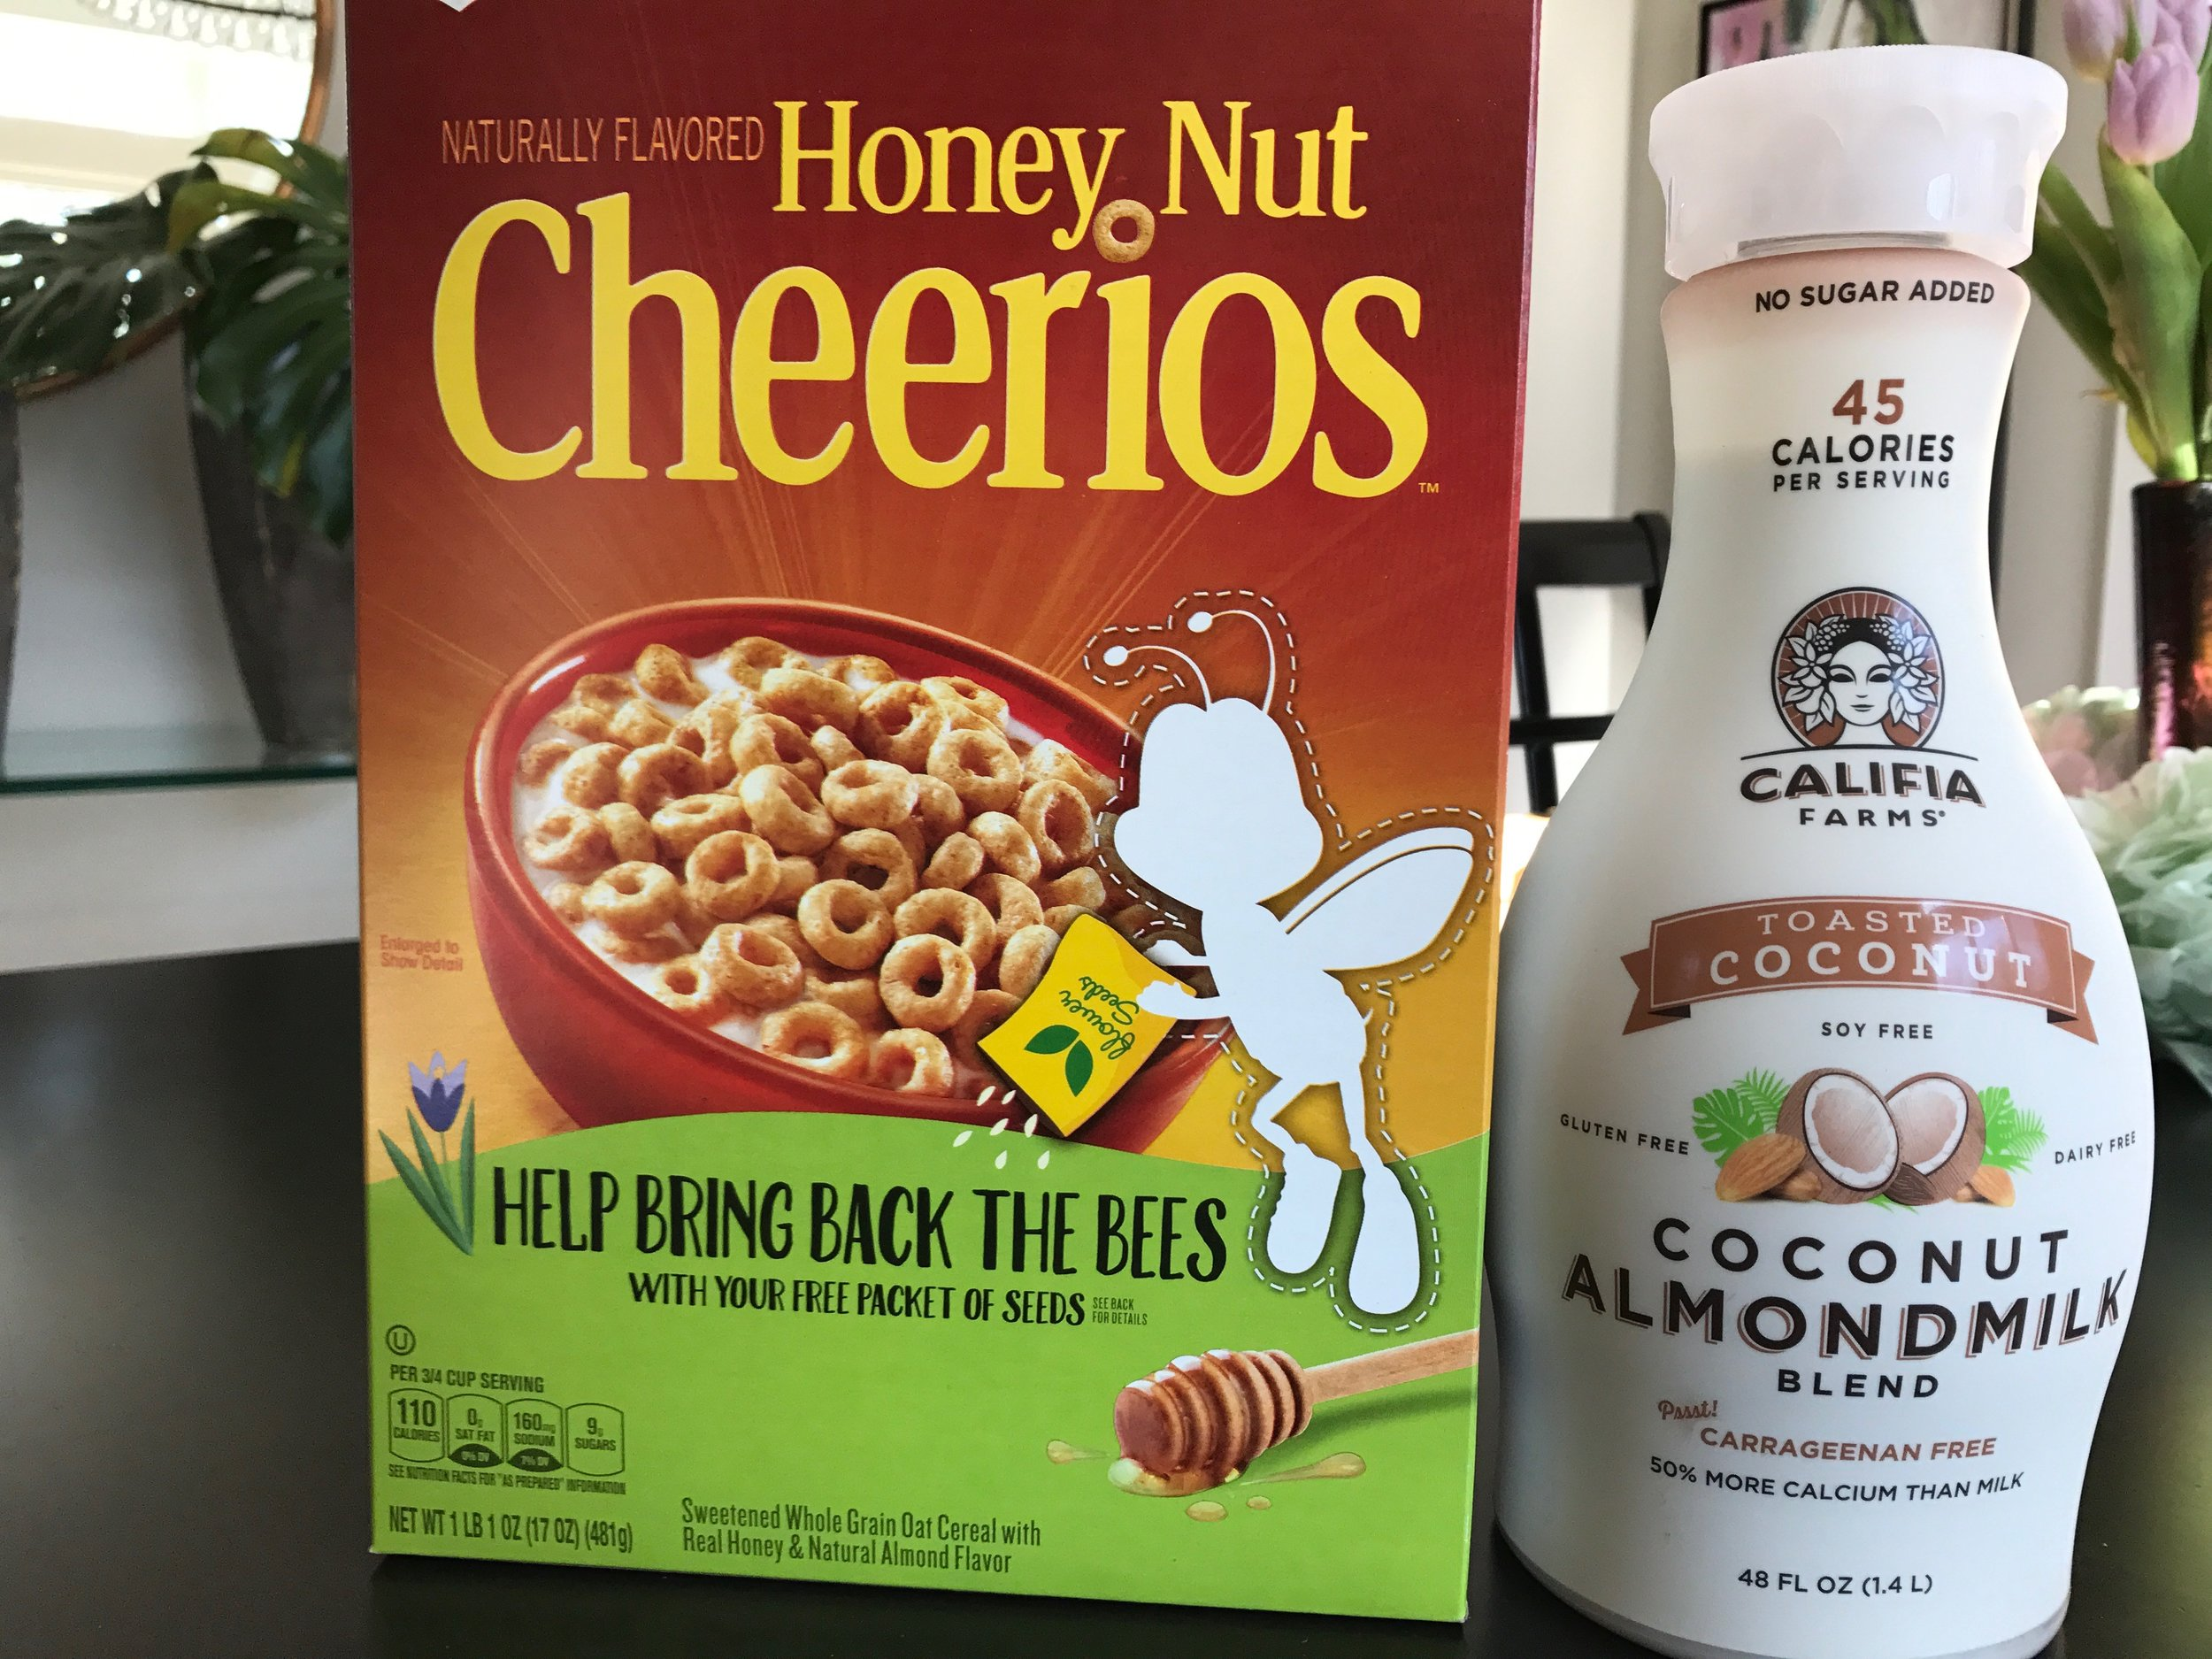 Lately my breakfast routine has been 2 bowls of either coconut milk and Kellogg's Rice Krispies or Honey Nut Cheerios and coconut/almond milk blend.  Yum!